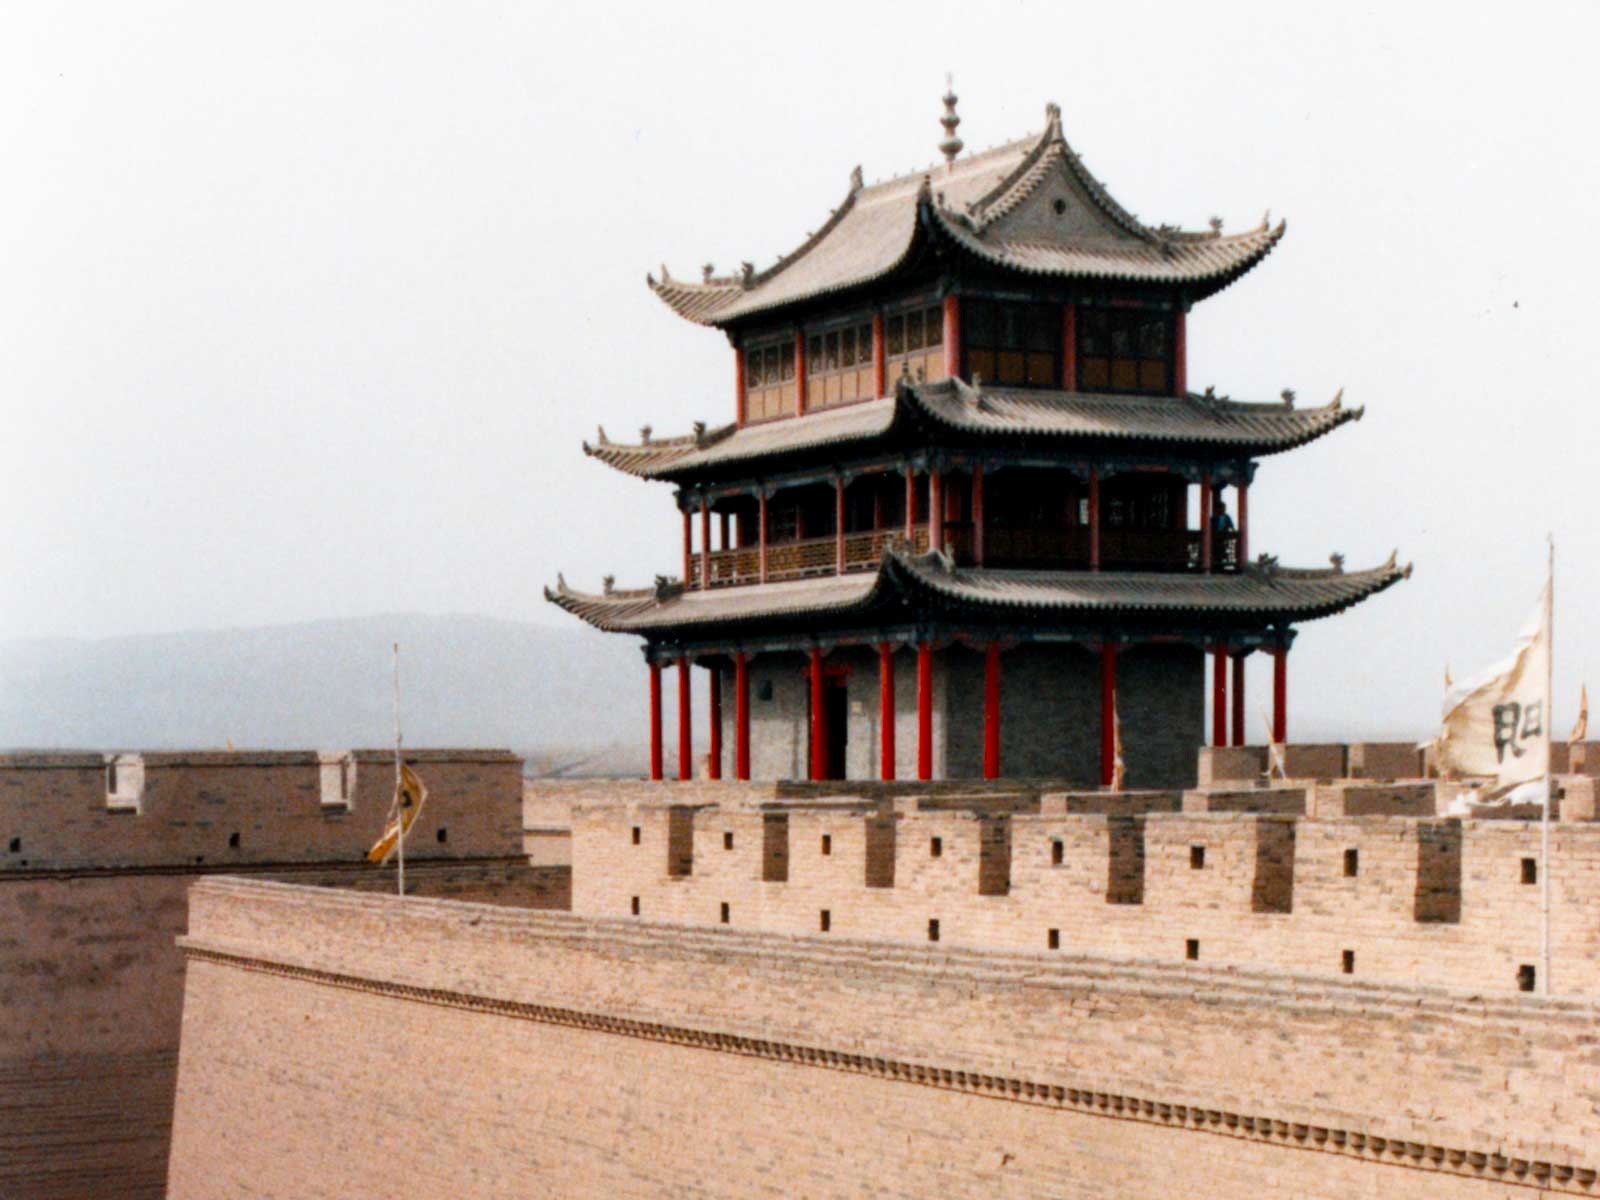 Jiayuguan Great Wall - Eastern Civilization - 1995 China Culture Study Tour - Silk Road Photo Journal - Steven Andrew Martin